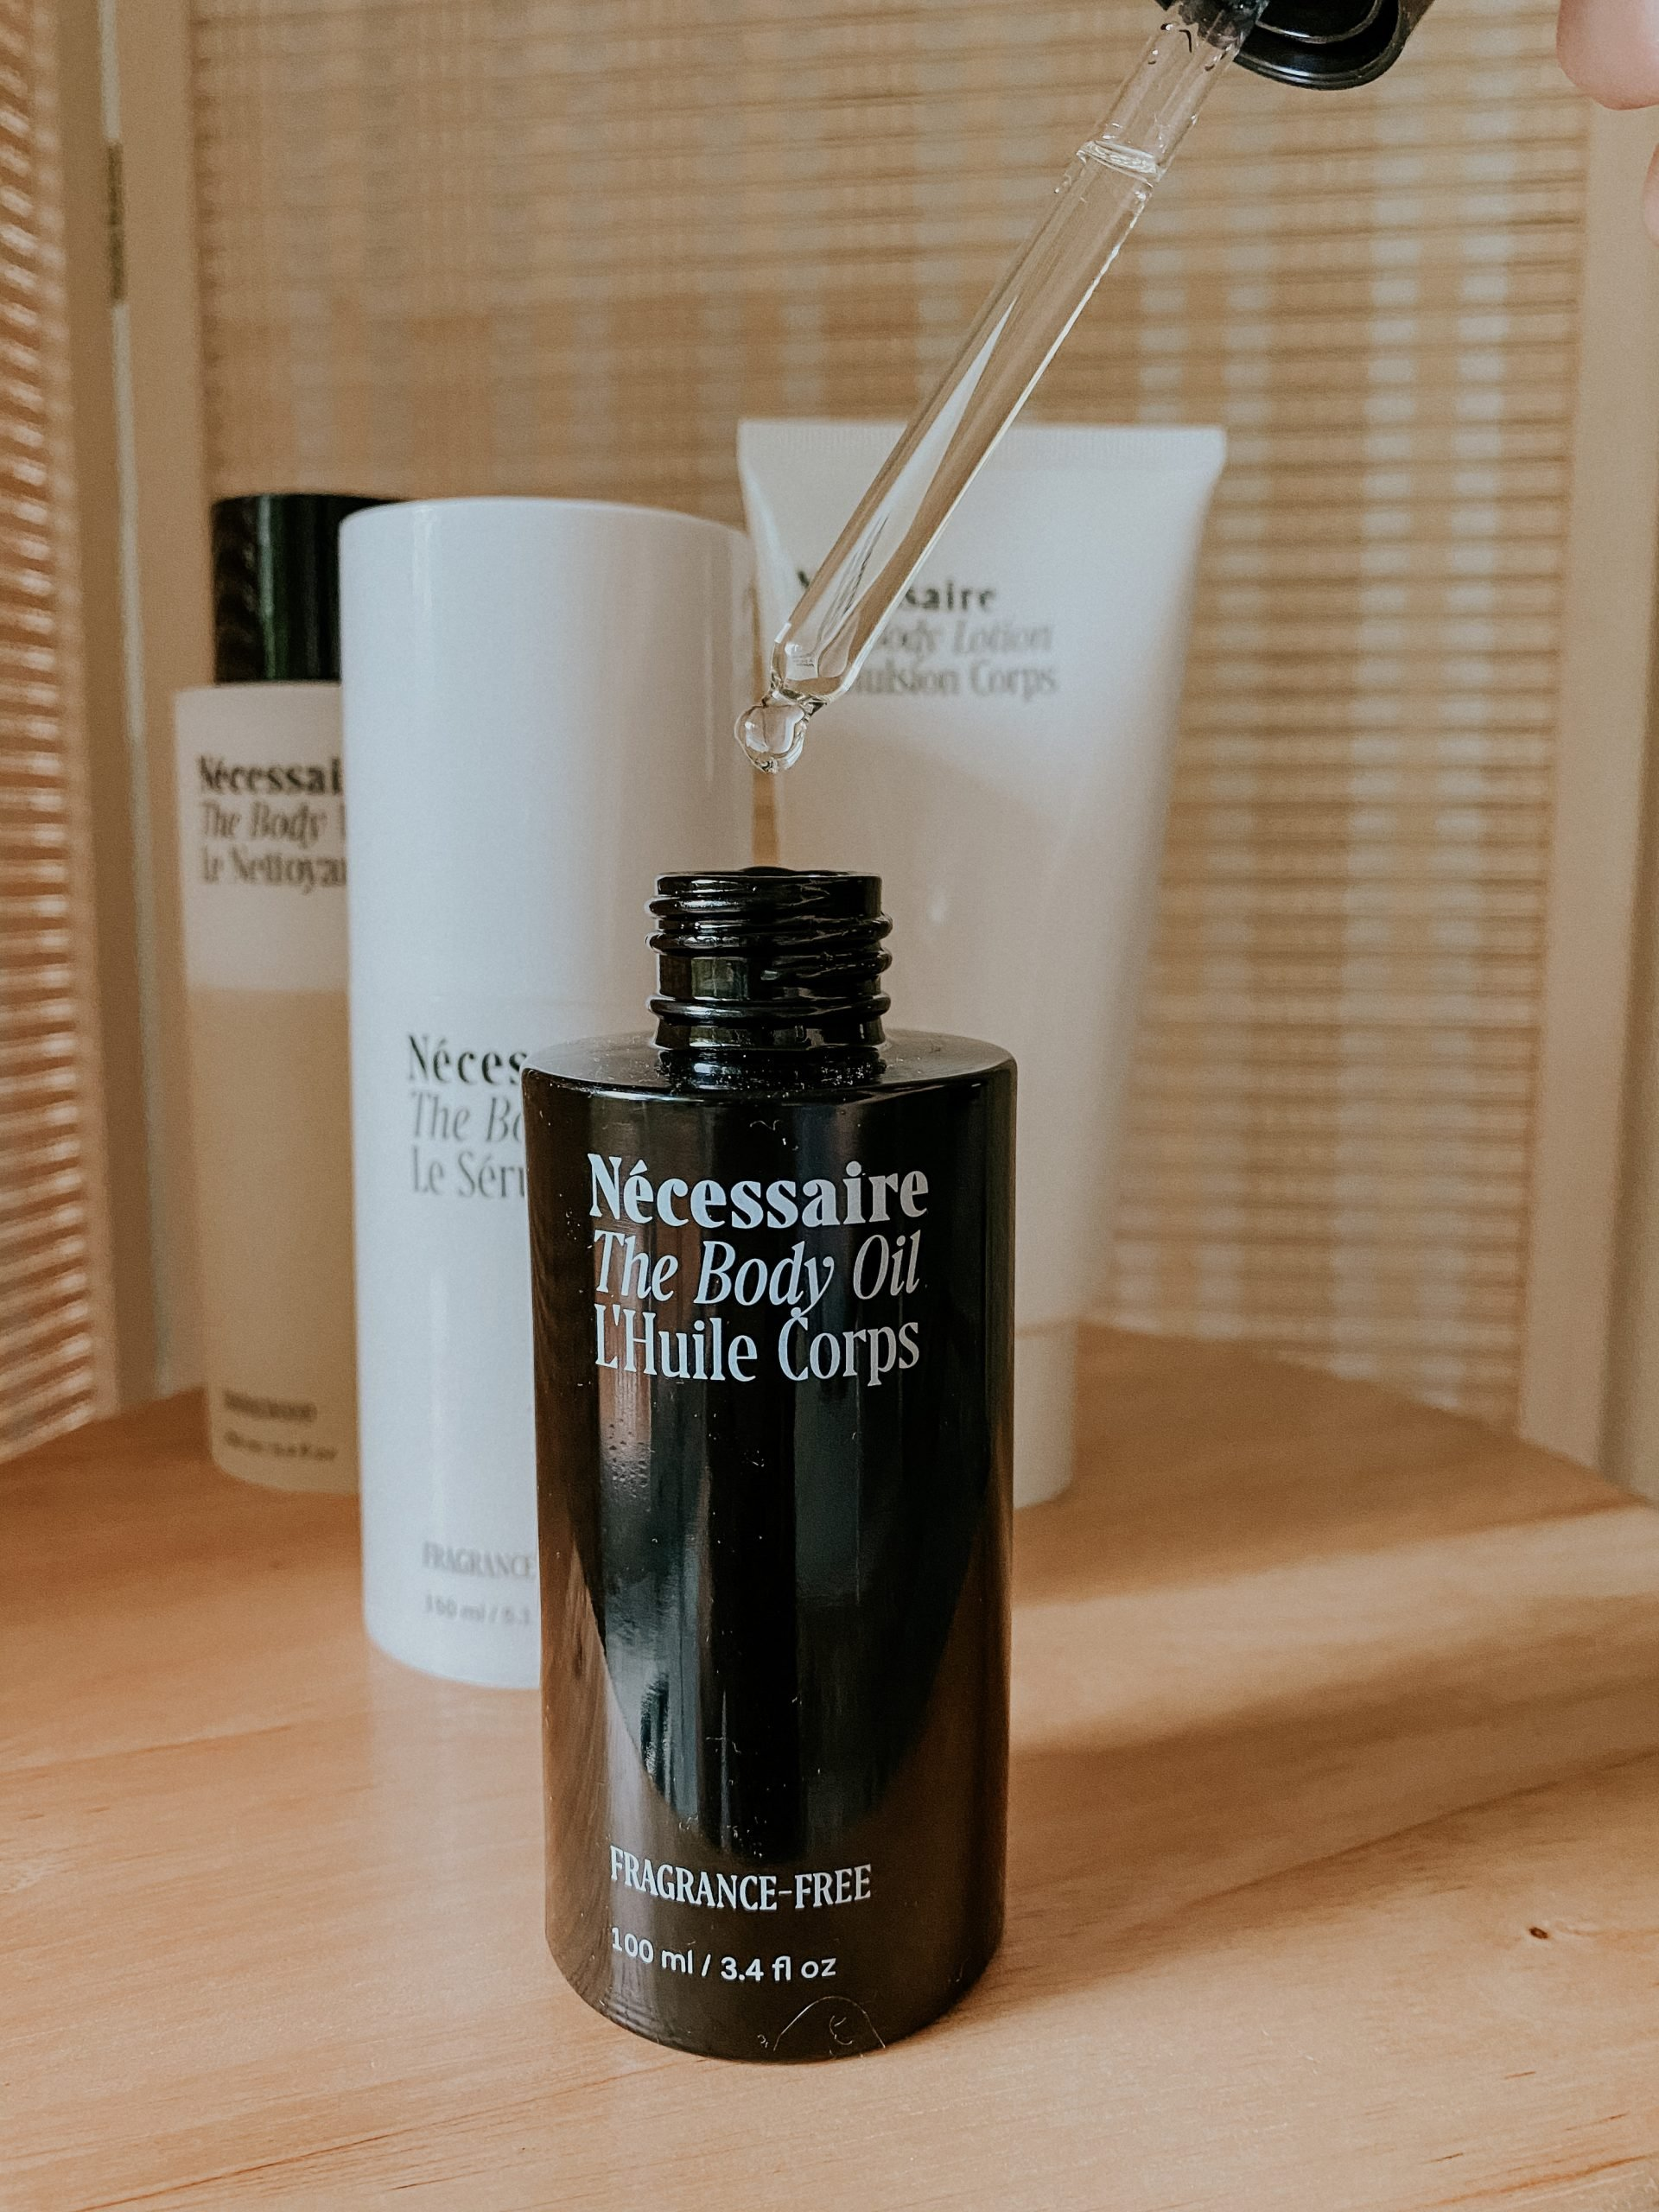 Necessaire The Body Oil with other Necessaire body products